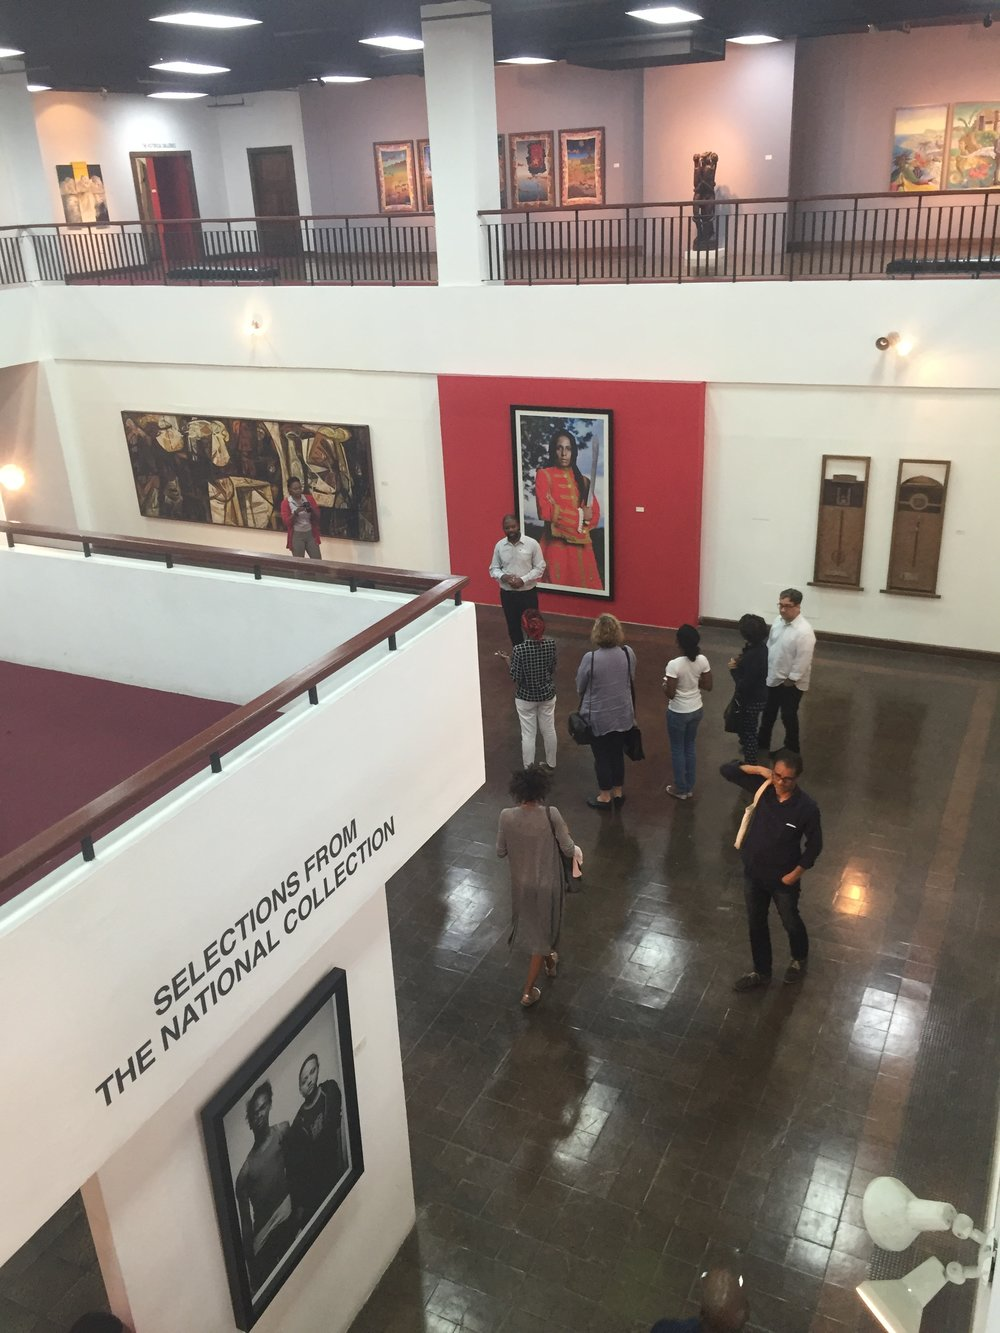 Interior view with tour group at National Art Gallery of Jamaica.